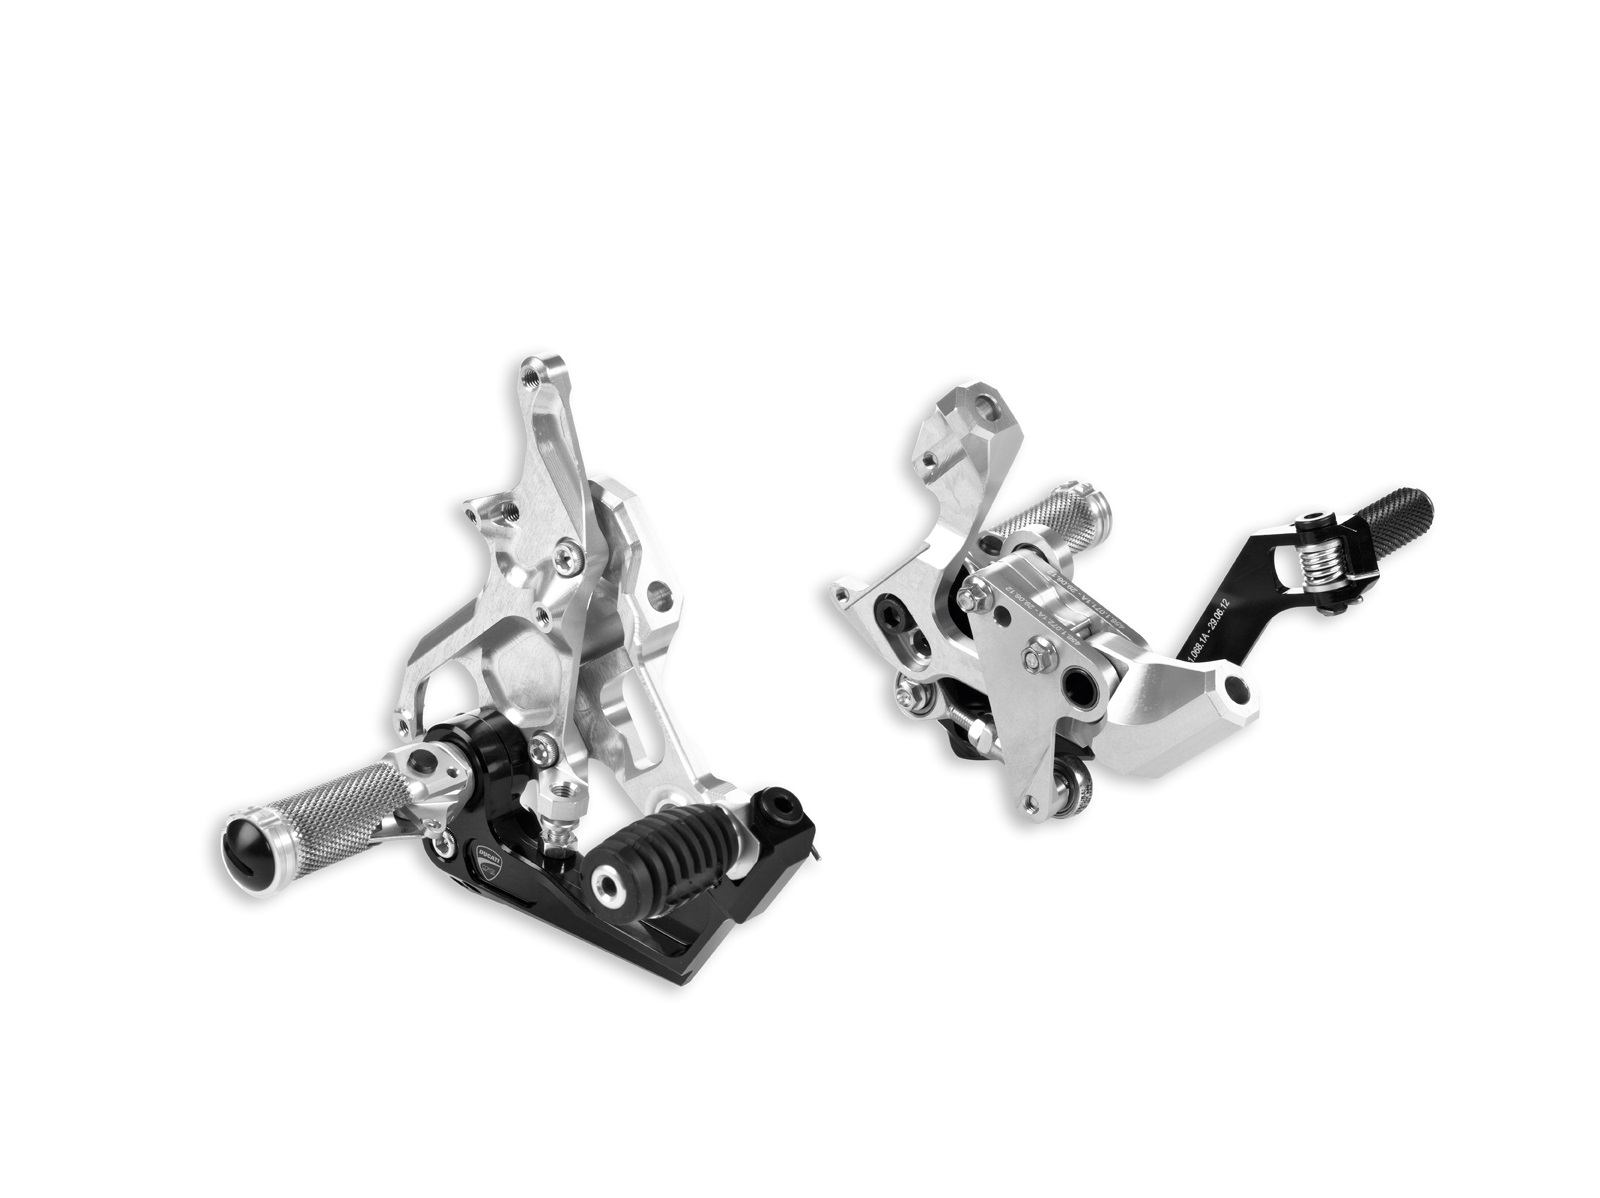 Ducati 1199 Panigale Billet Adjustable Rearsets picture